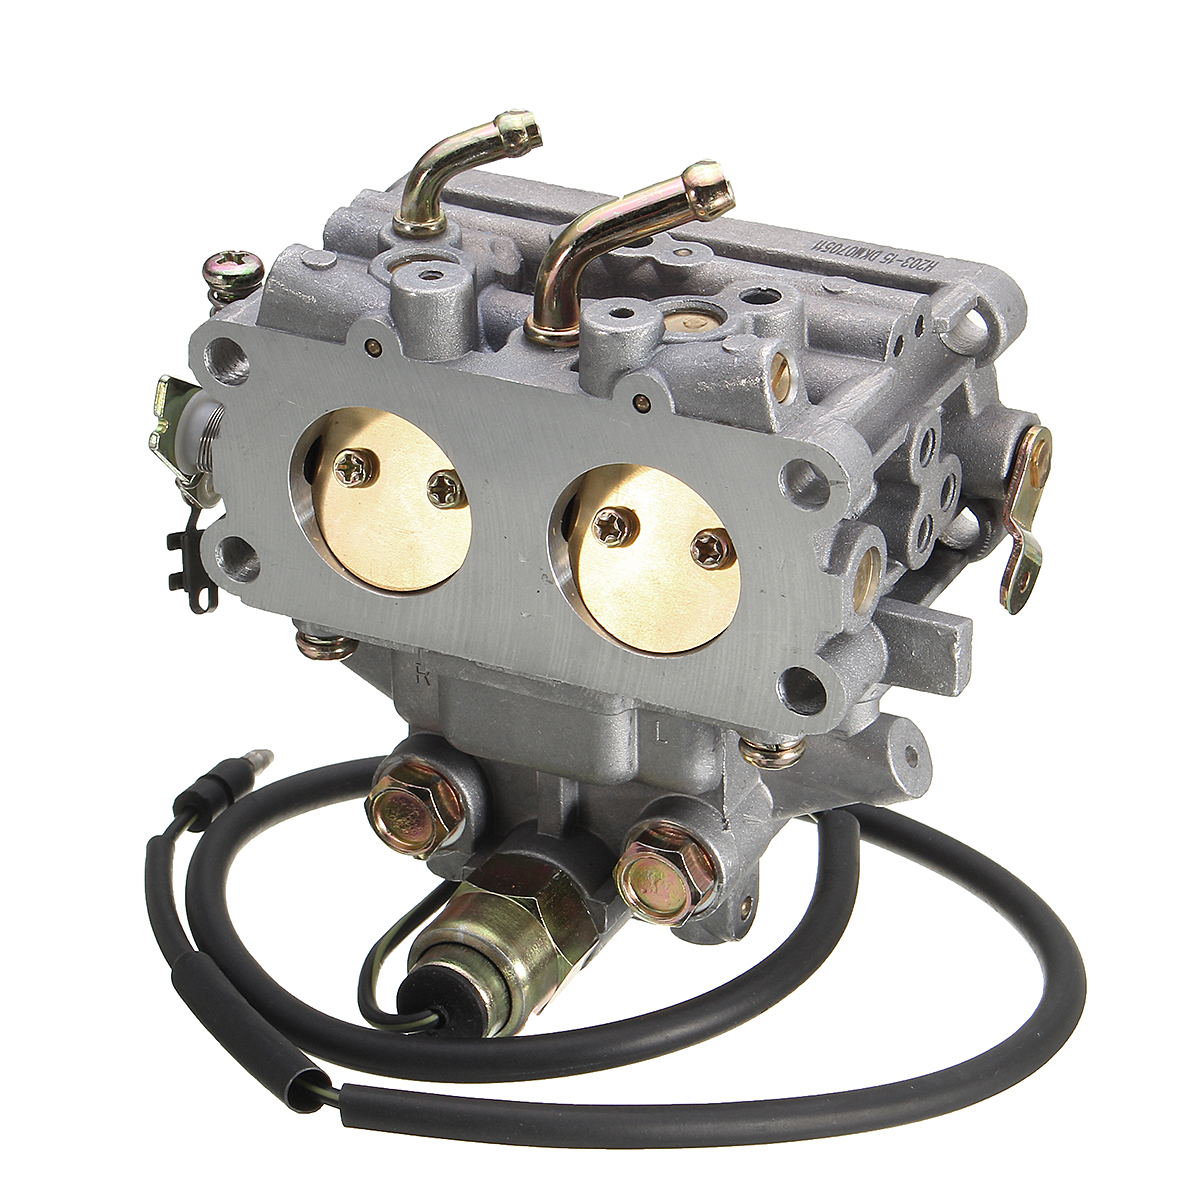 Carburetor Carb Engine For Honda Gx670 46 Gx 670 24hp Small Wiring Diagram 16100 Zn1 812 In Carburetors From Automobiles Motorcycles On